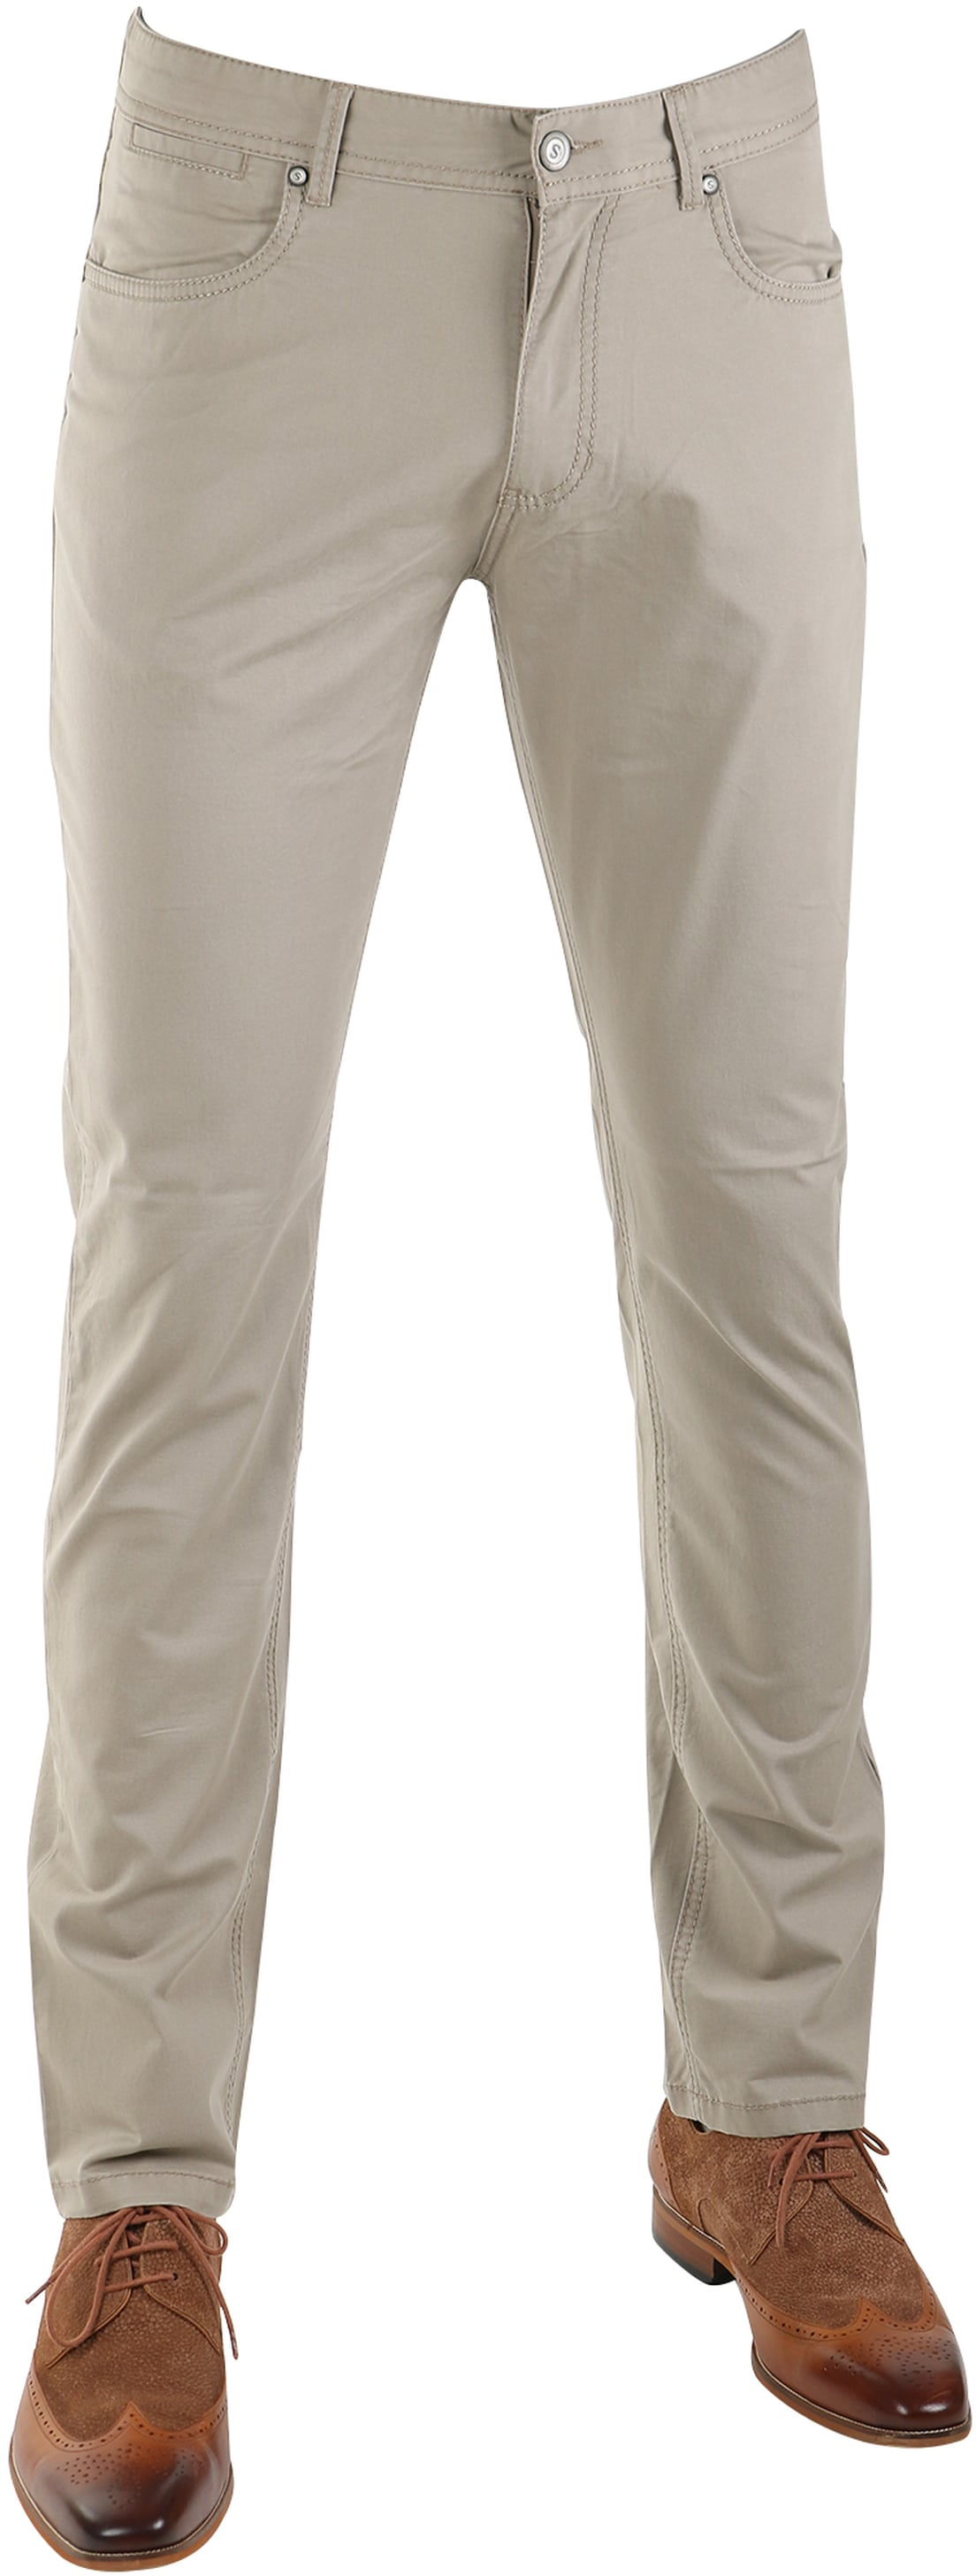 Suitable Barrie Broek Khaki foto 0